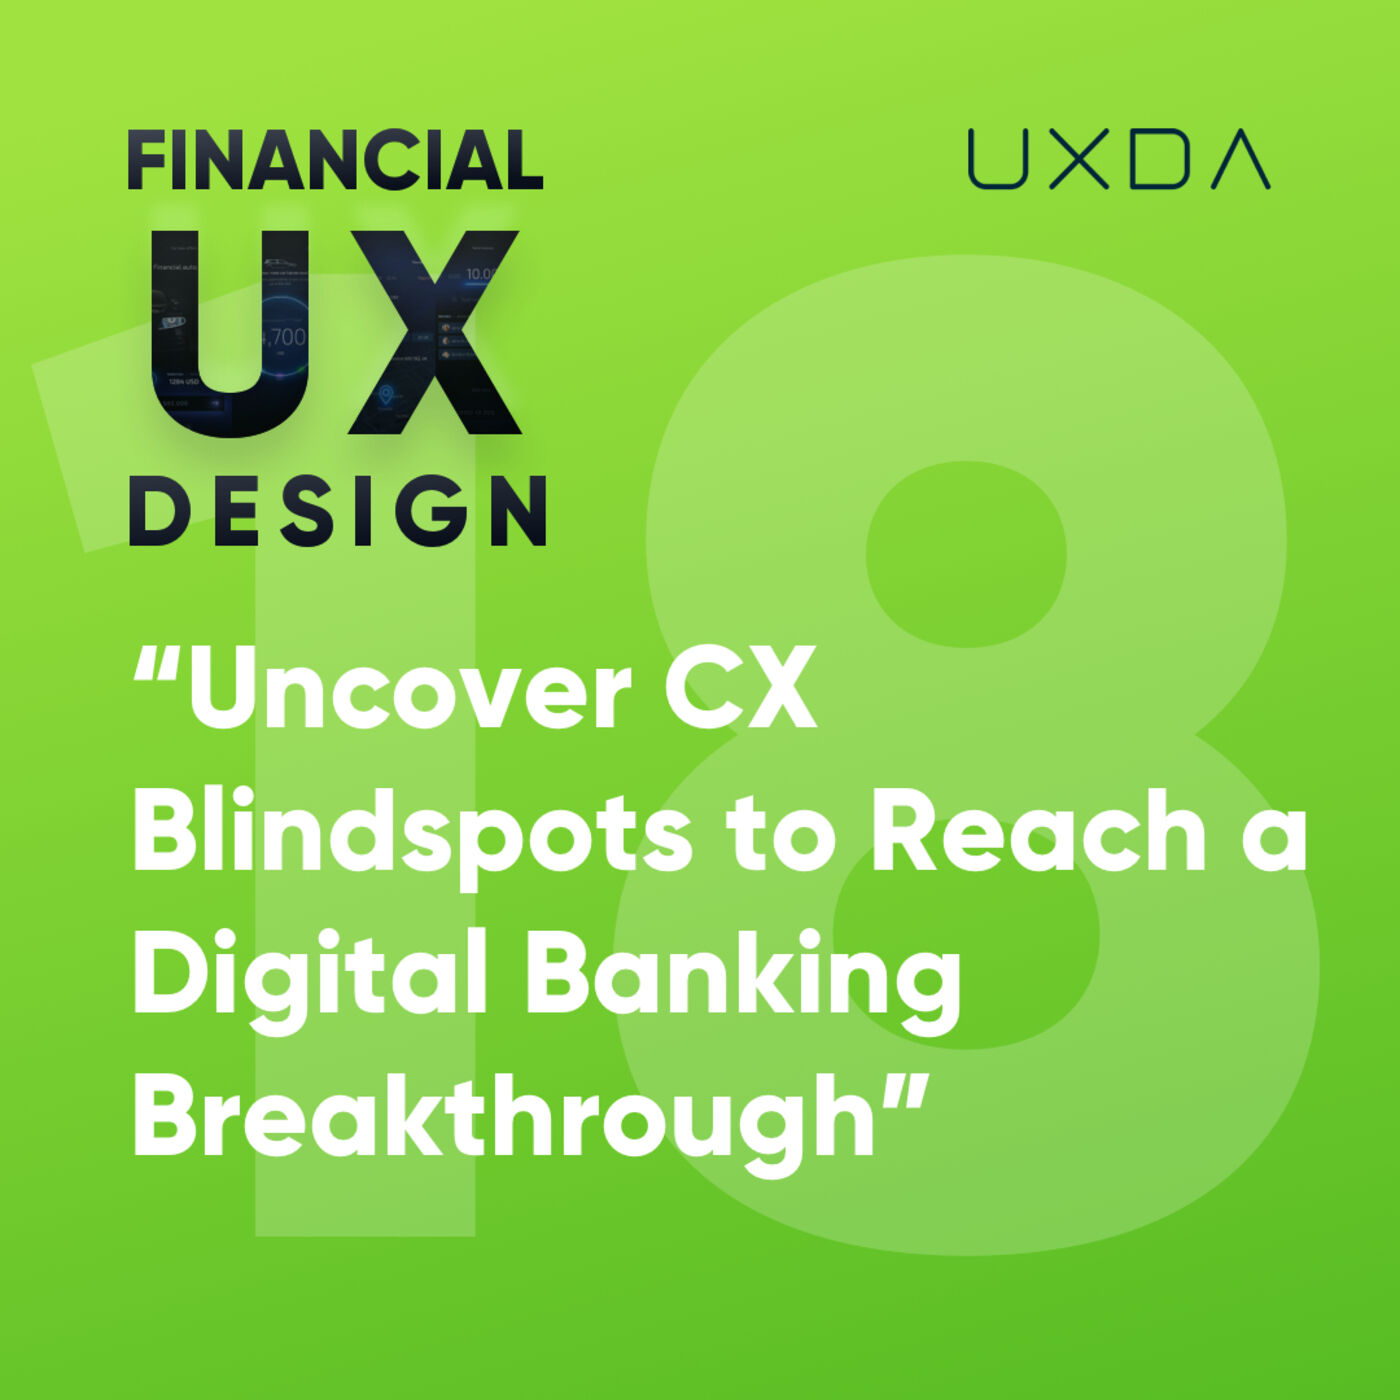 #18 Uncover Banking Customer Experience Blindspots to Reach a Digital Breakthrough